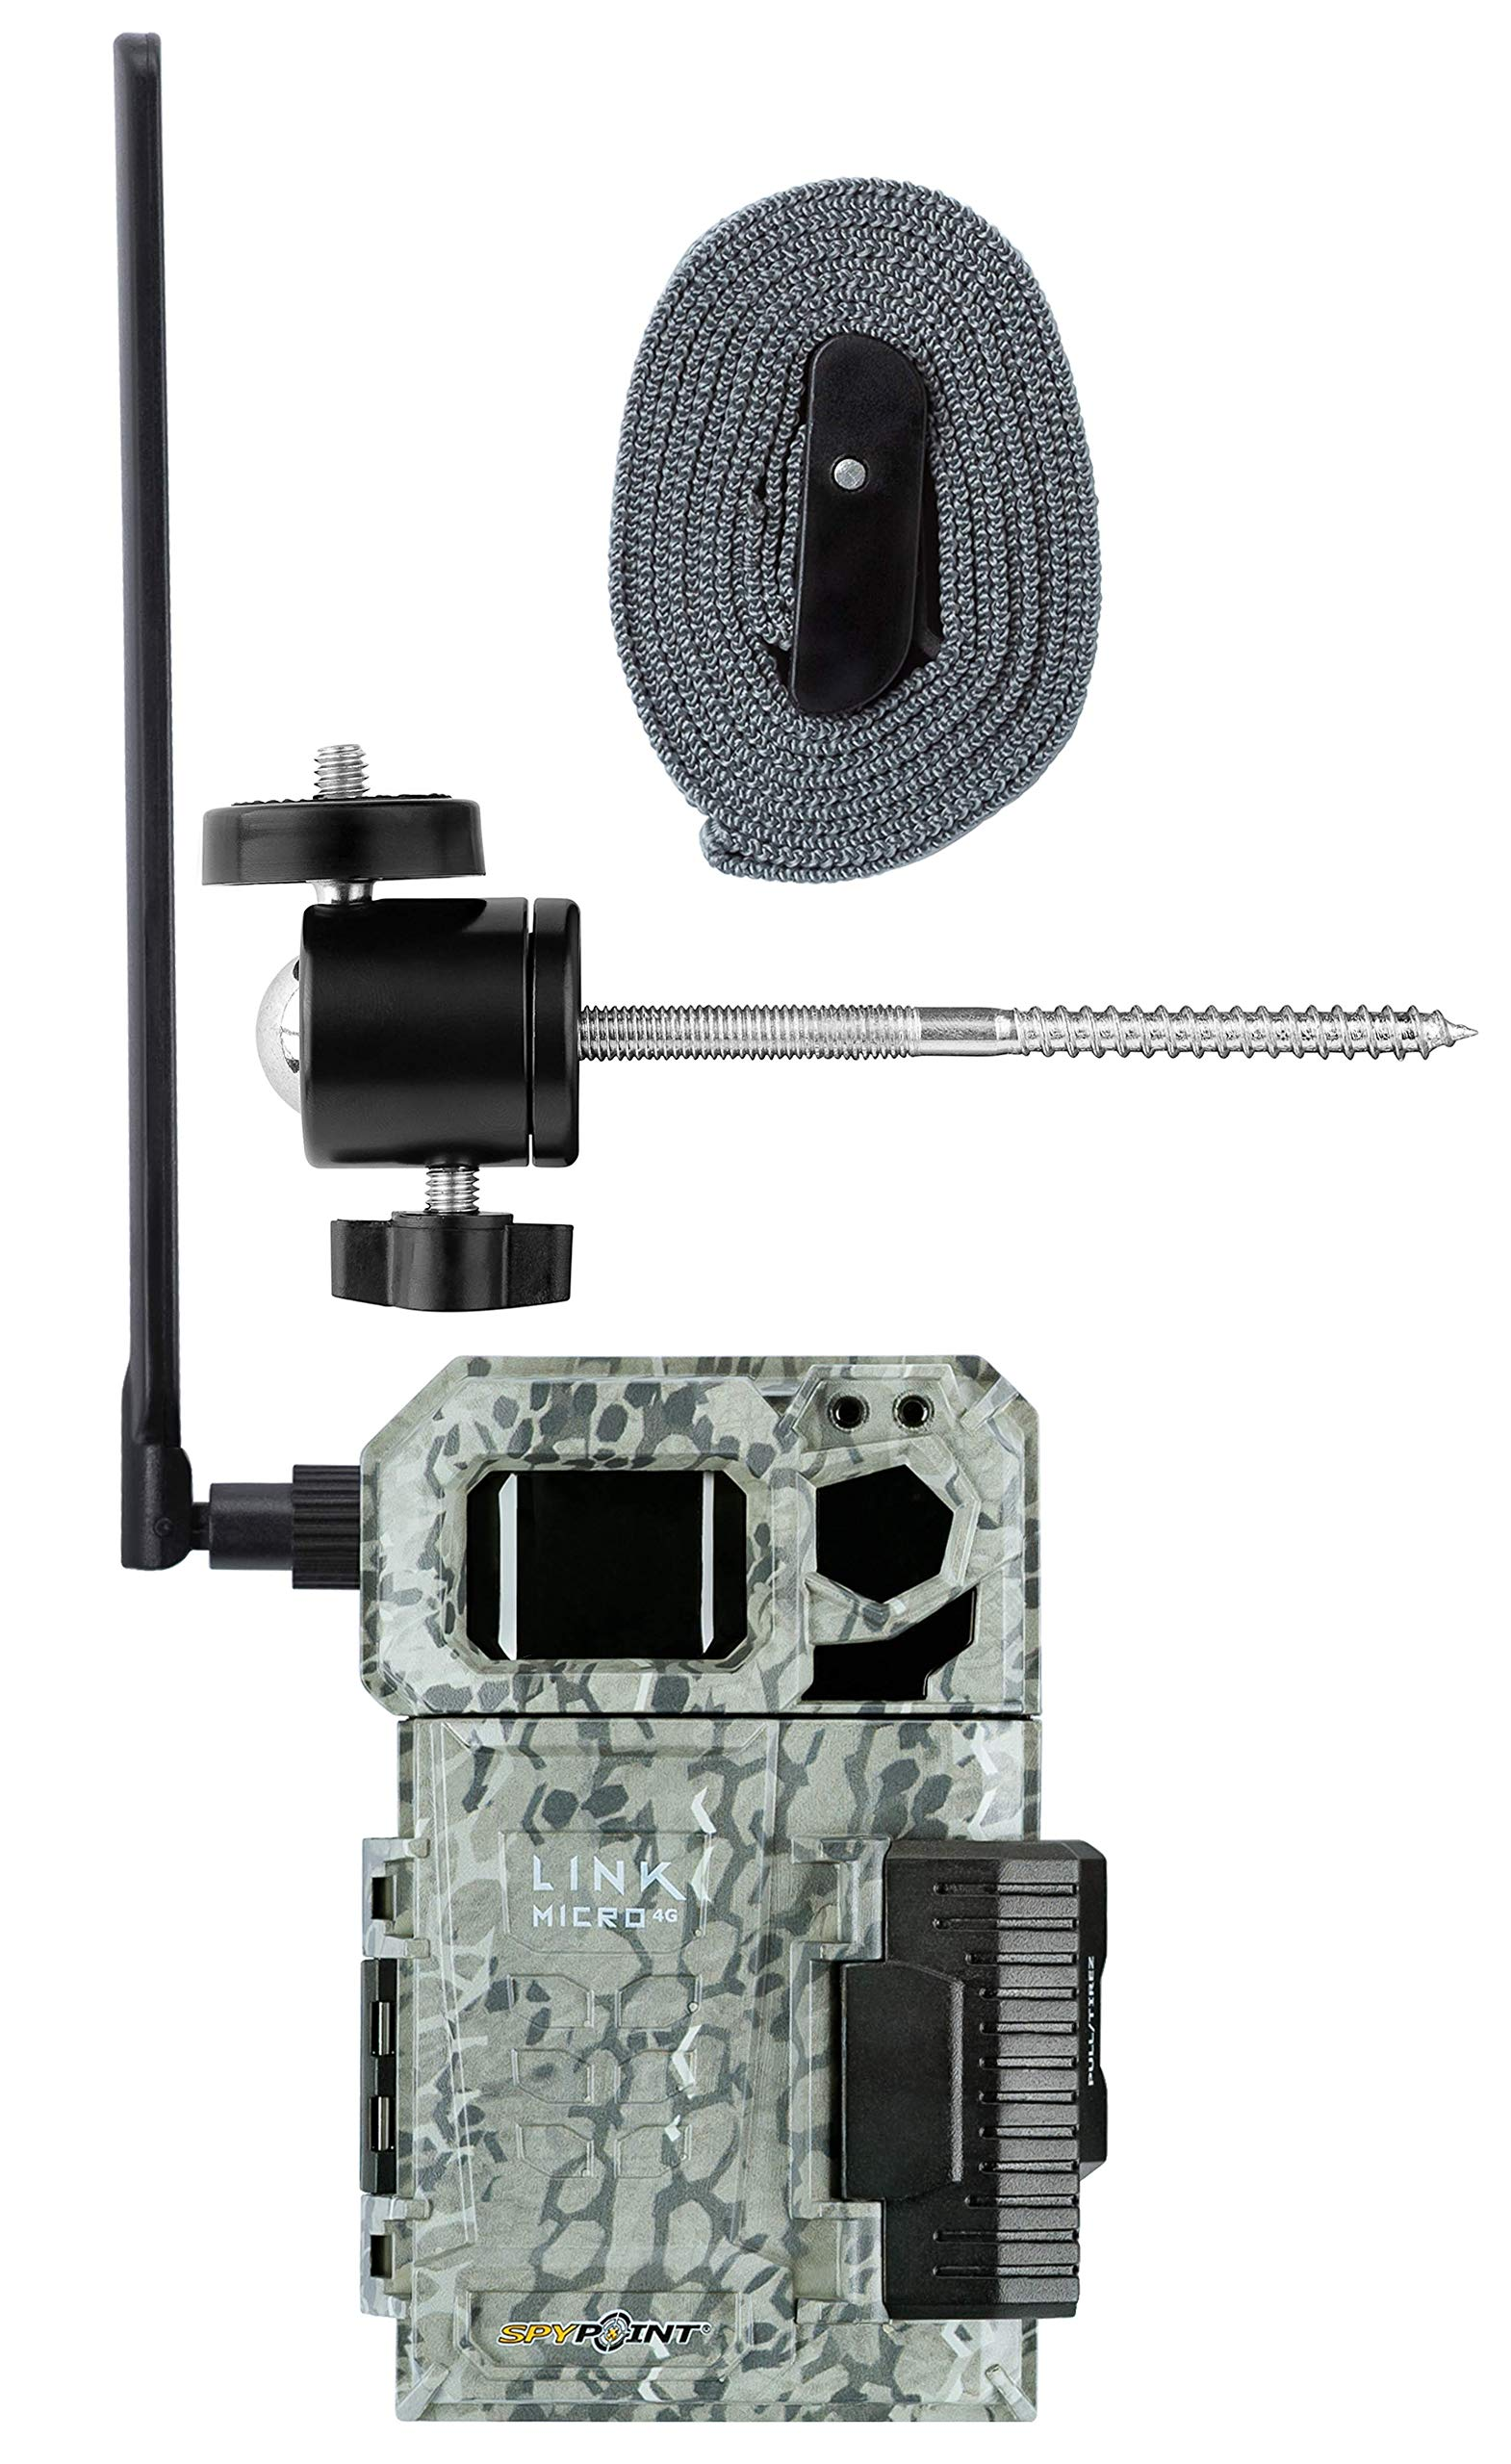 Spypoint Link Micro 4G Cellular Trail Camera with Mount (Verizon) by SPYPOINT